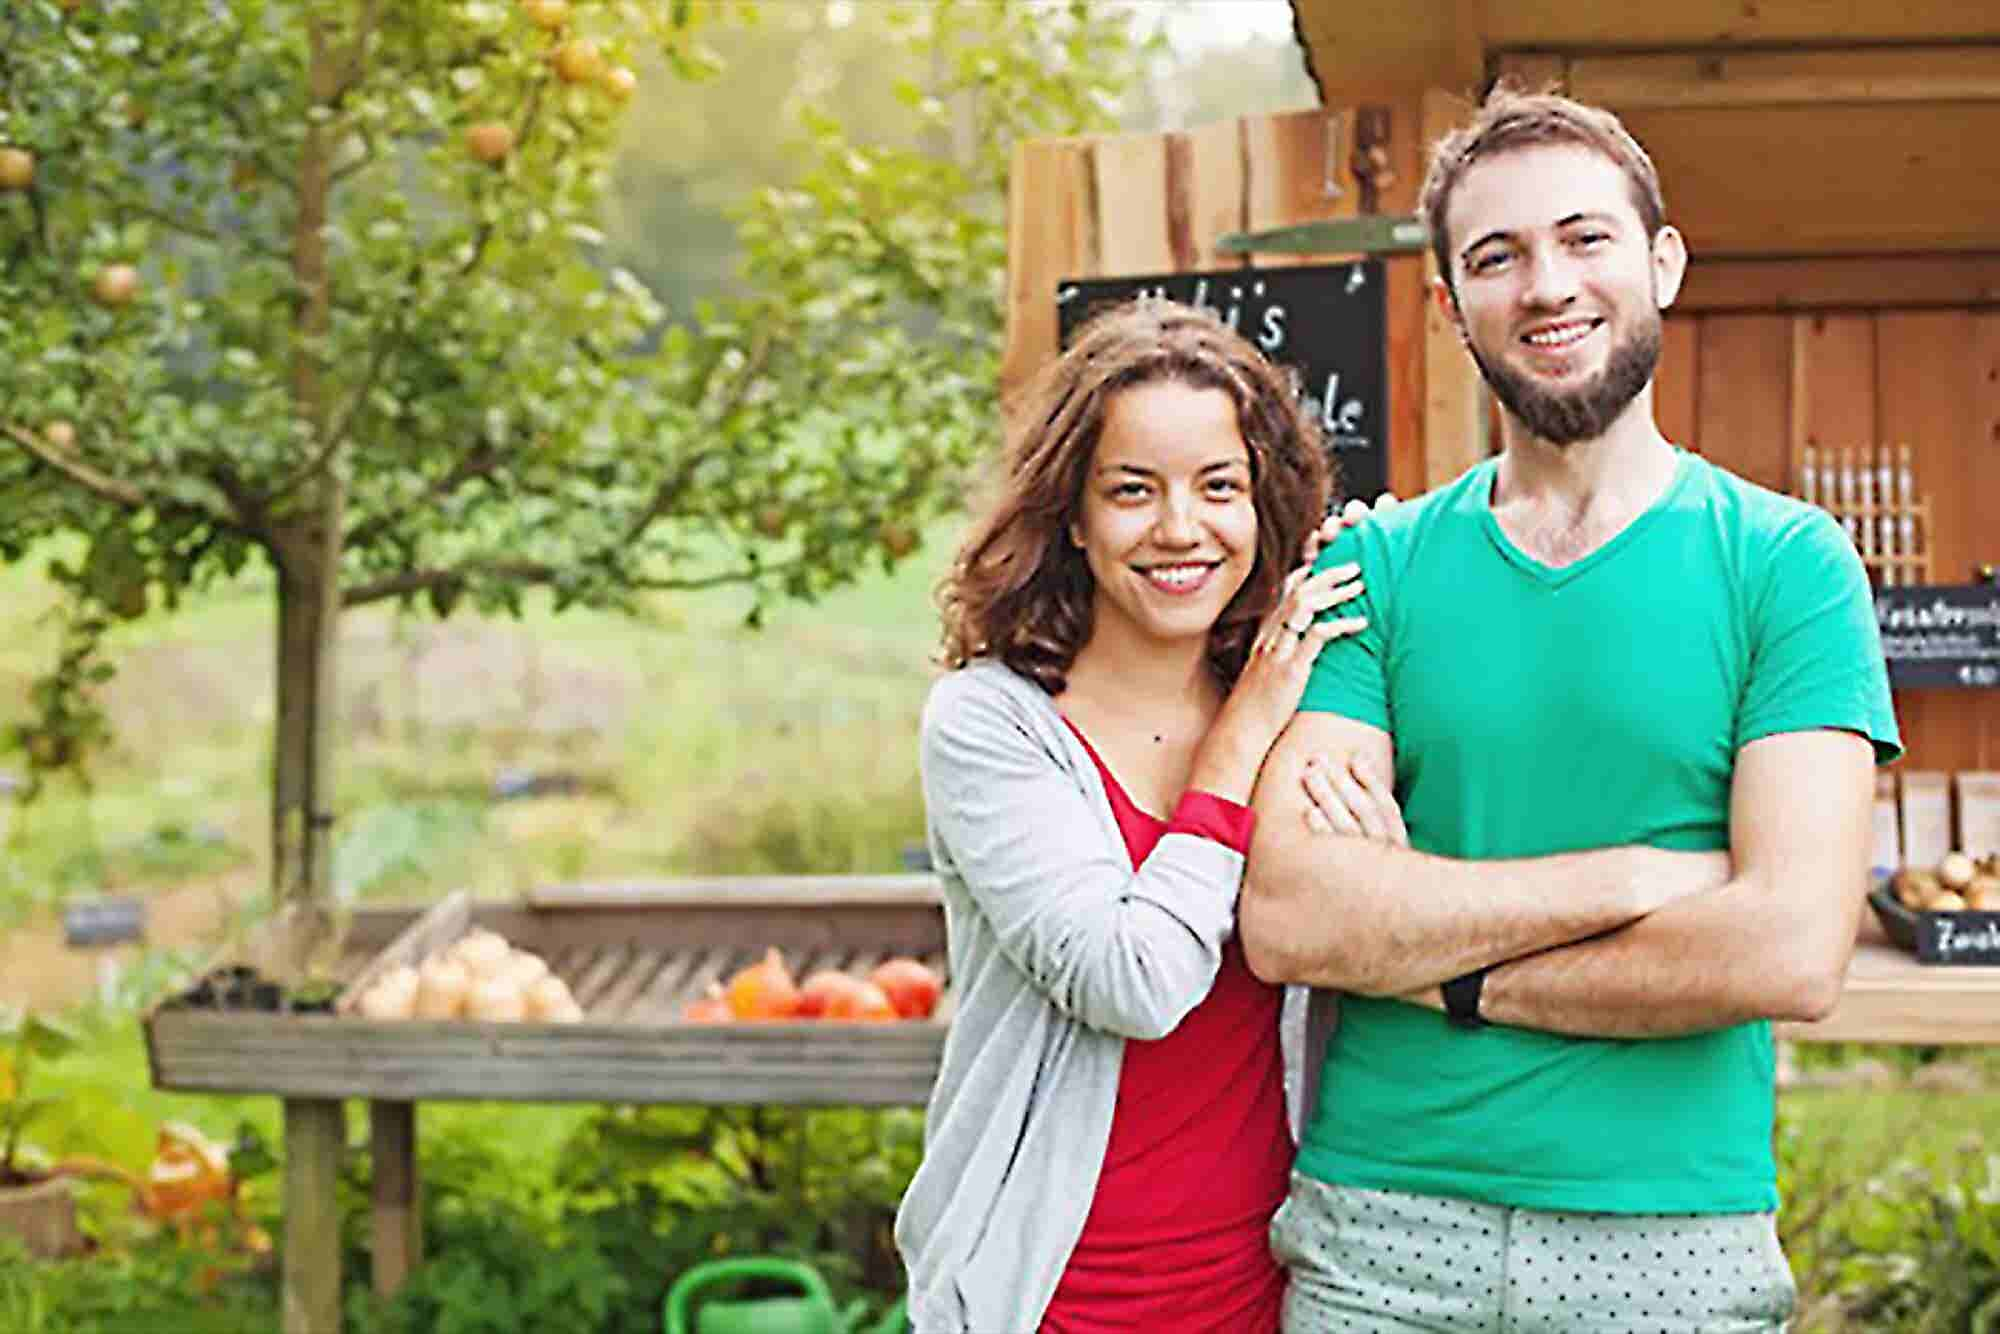 The 5 Commandments of Running a Successful Business With Your Spouse